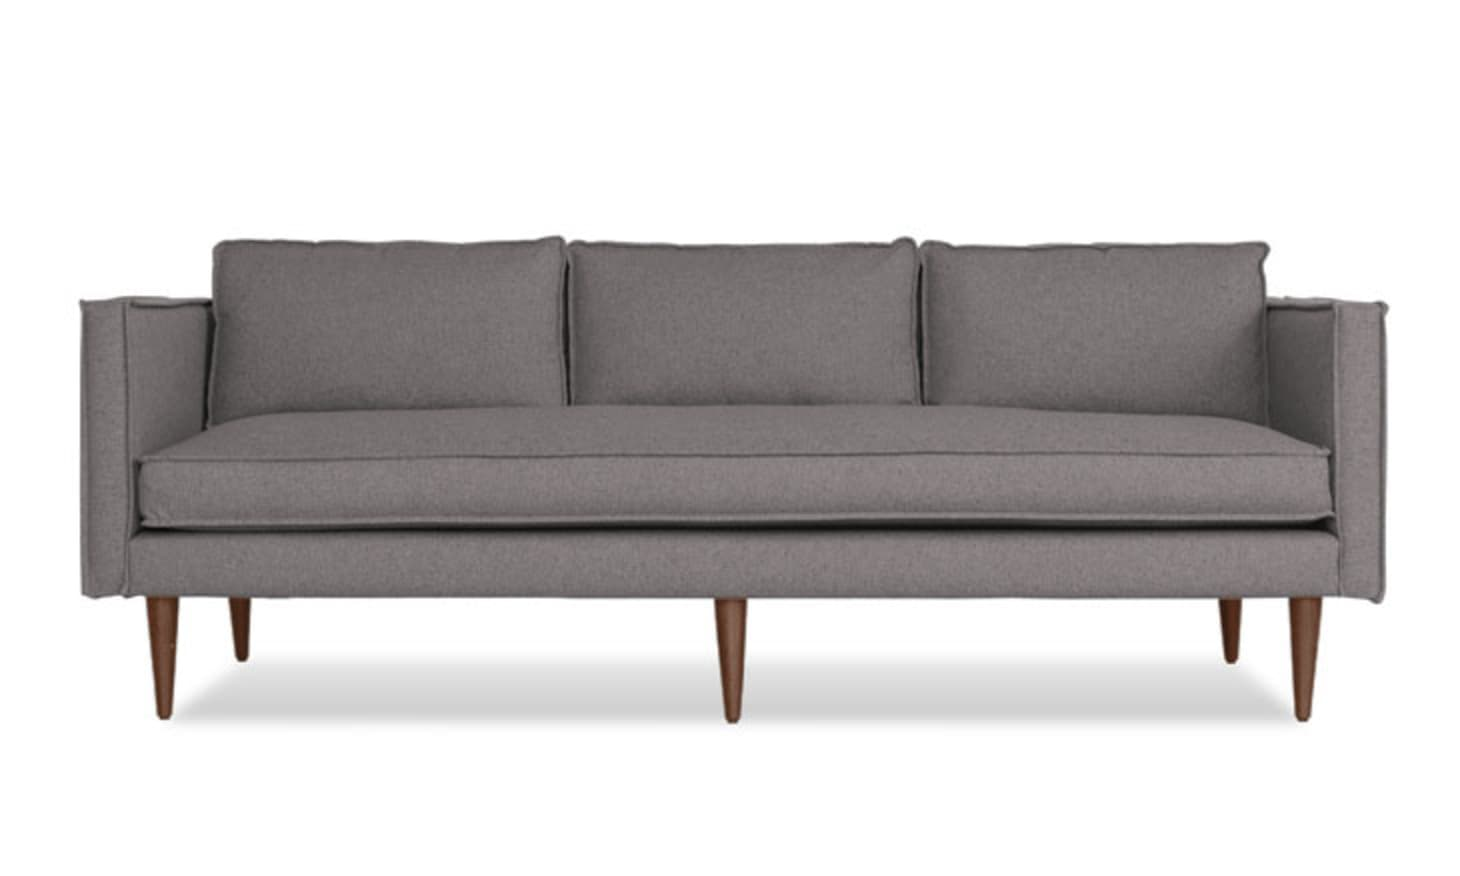 Awe Inspiring Reviewed The Most Comfortable Sofas At Joybird Apartment Machost Co Dining Chair Design Ideas Machostcouk